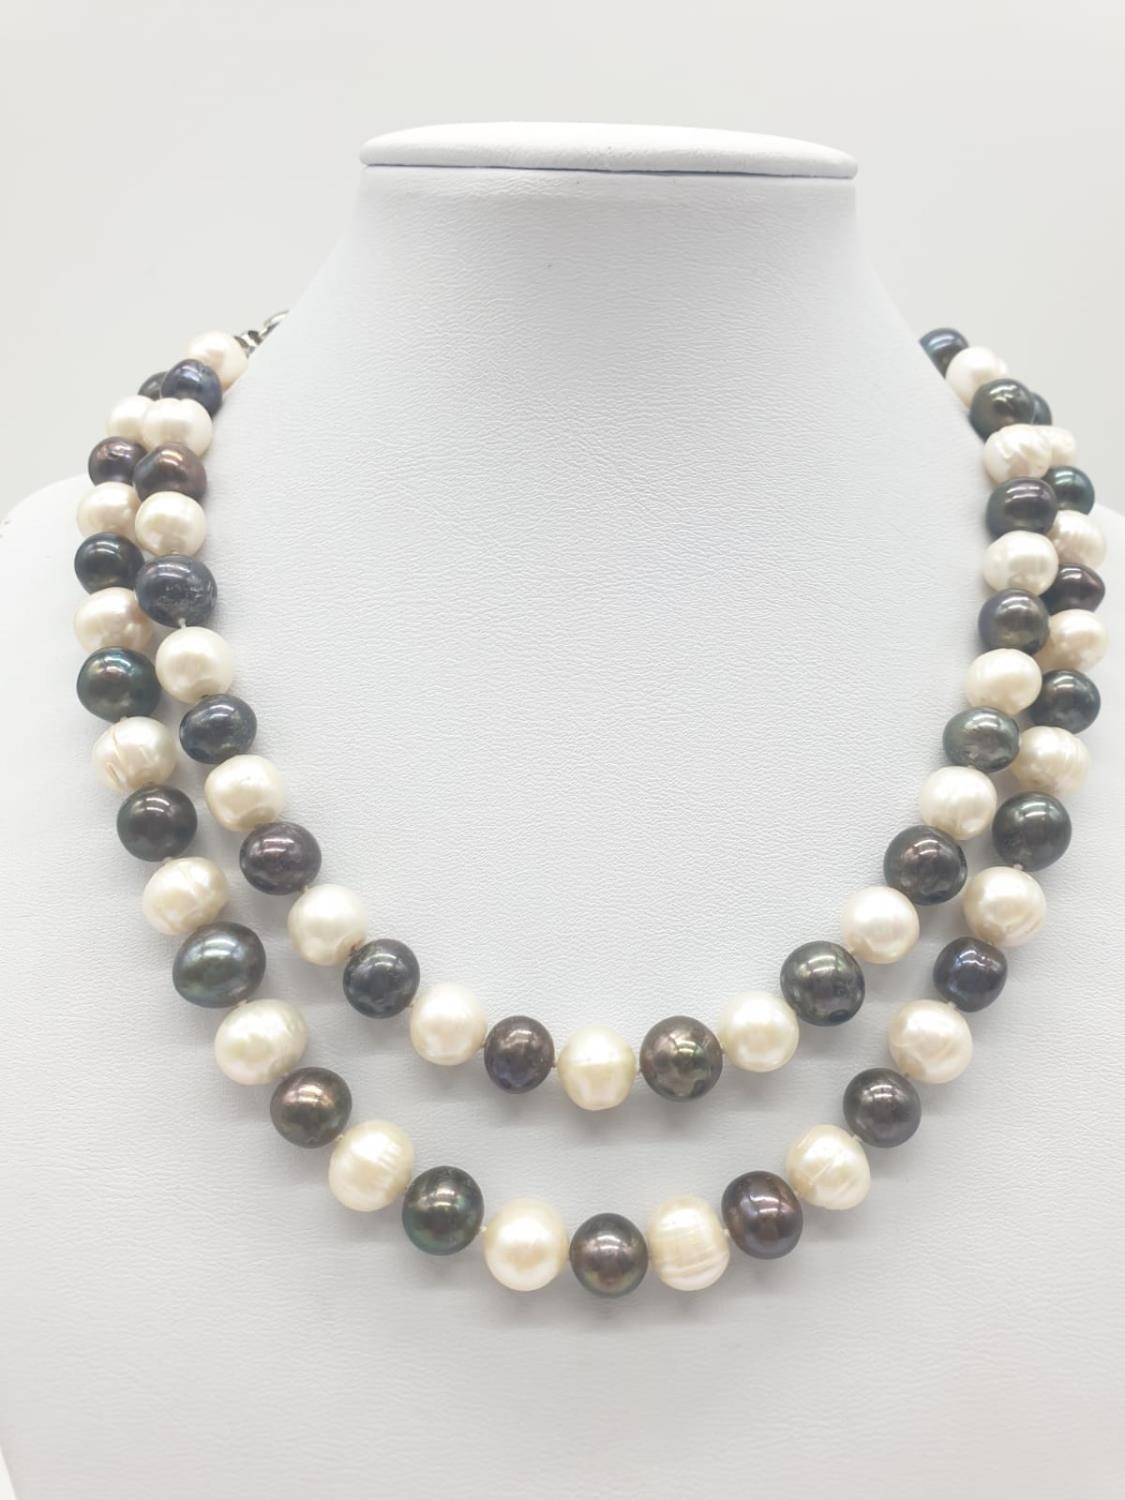 Black and White Pearl NECKLACE. 91.8g 80cm.